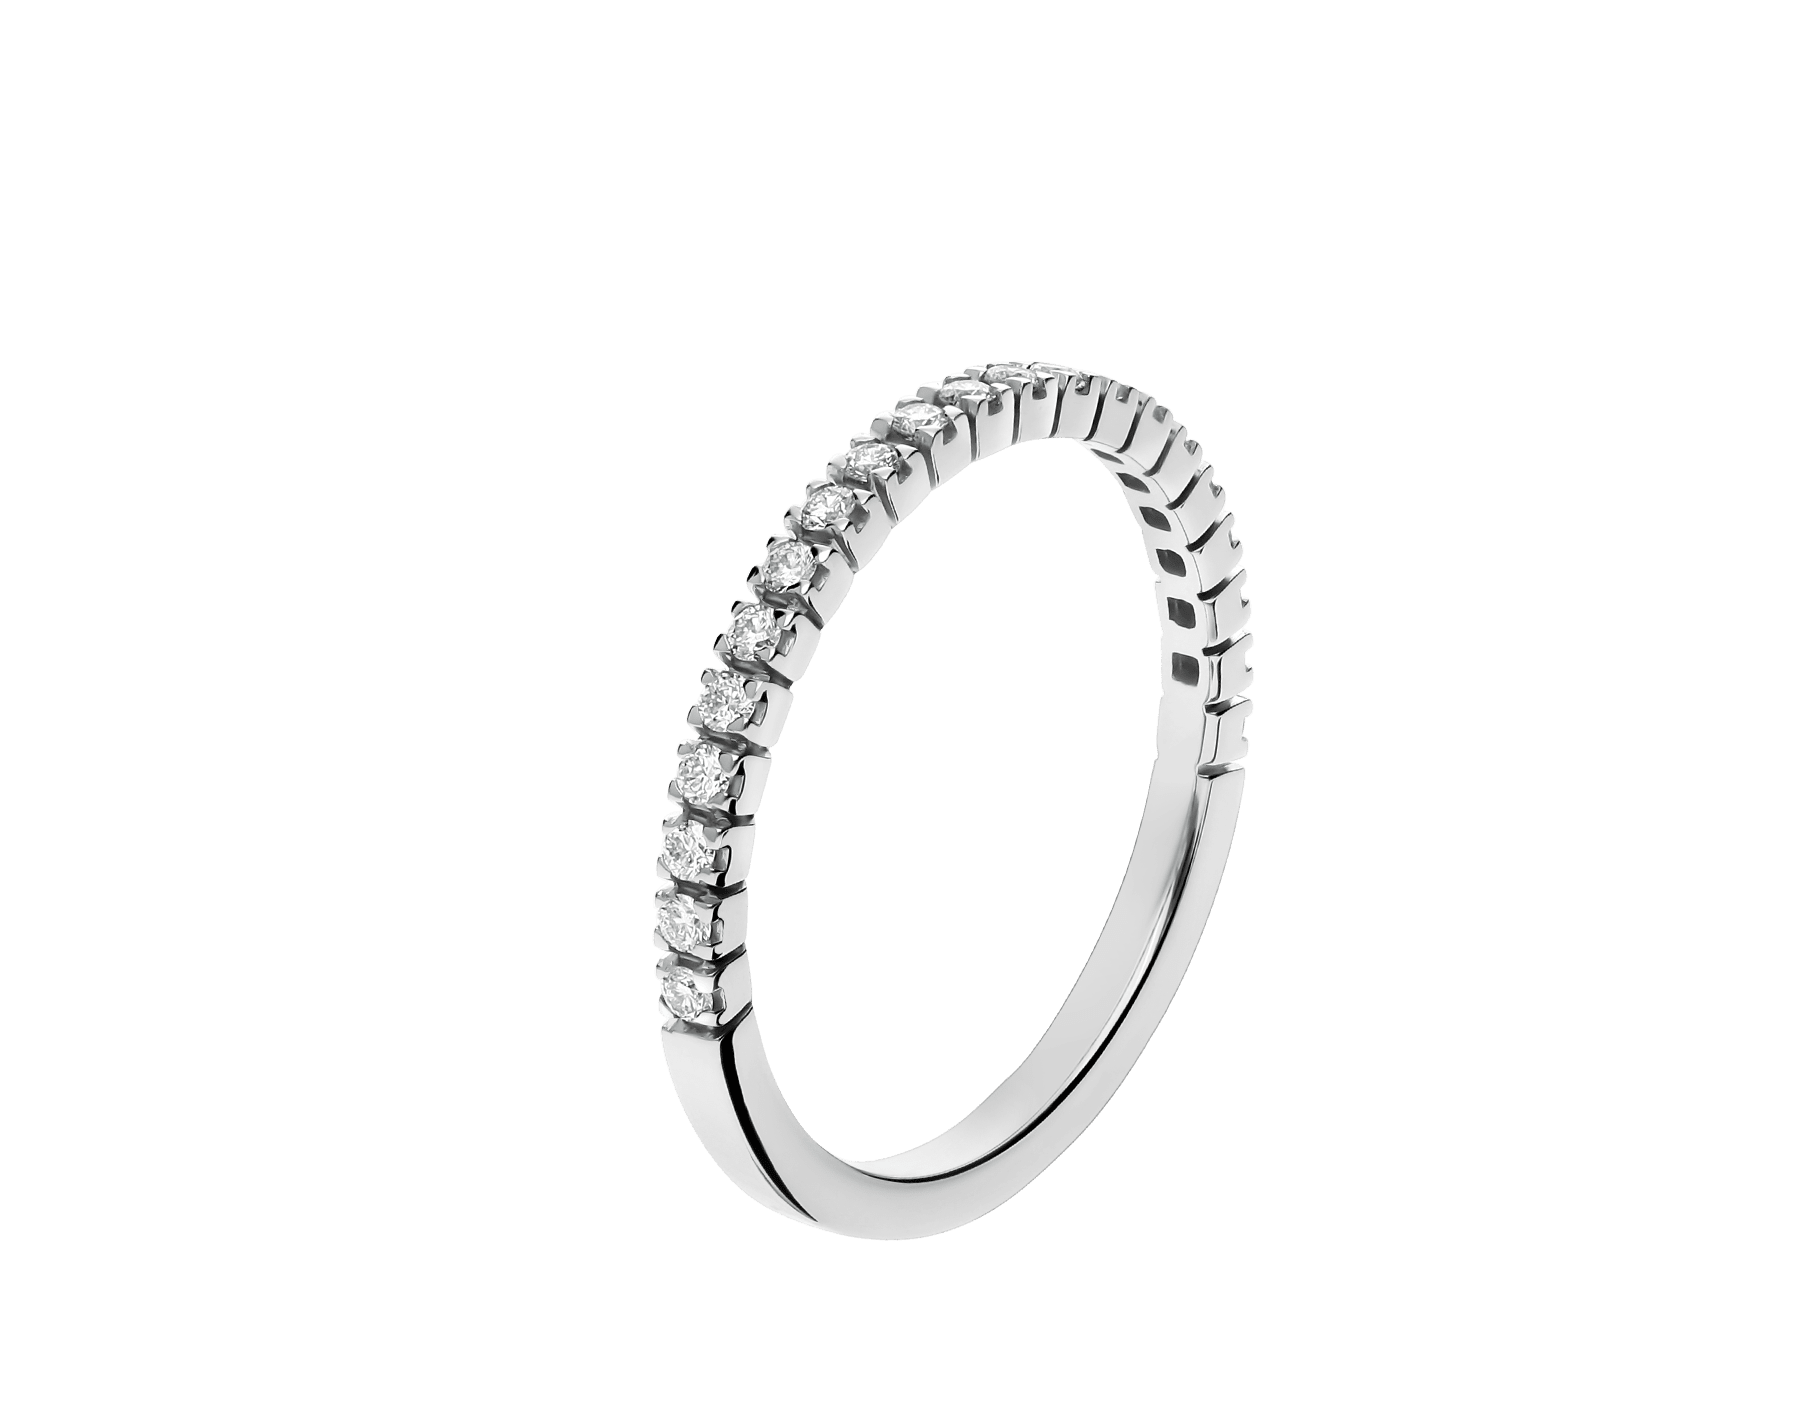 Eternity Band in thin size in 18 kt white gold with demi tour round brilliant cut diamonds AN857562 image 1